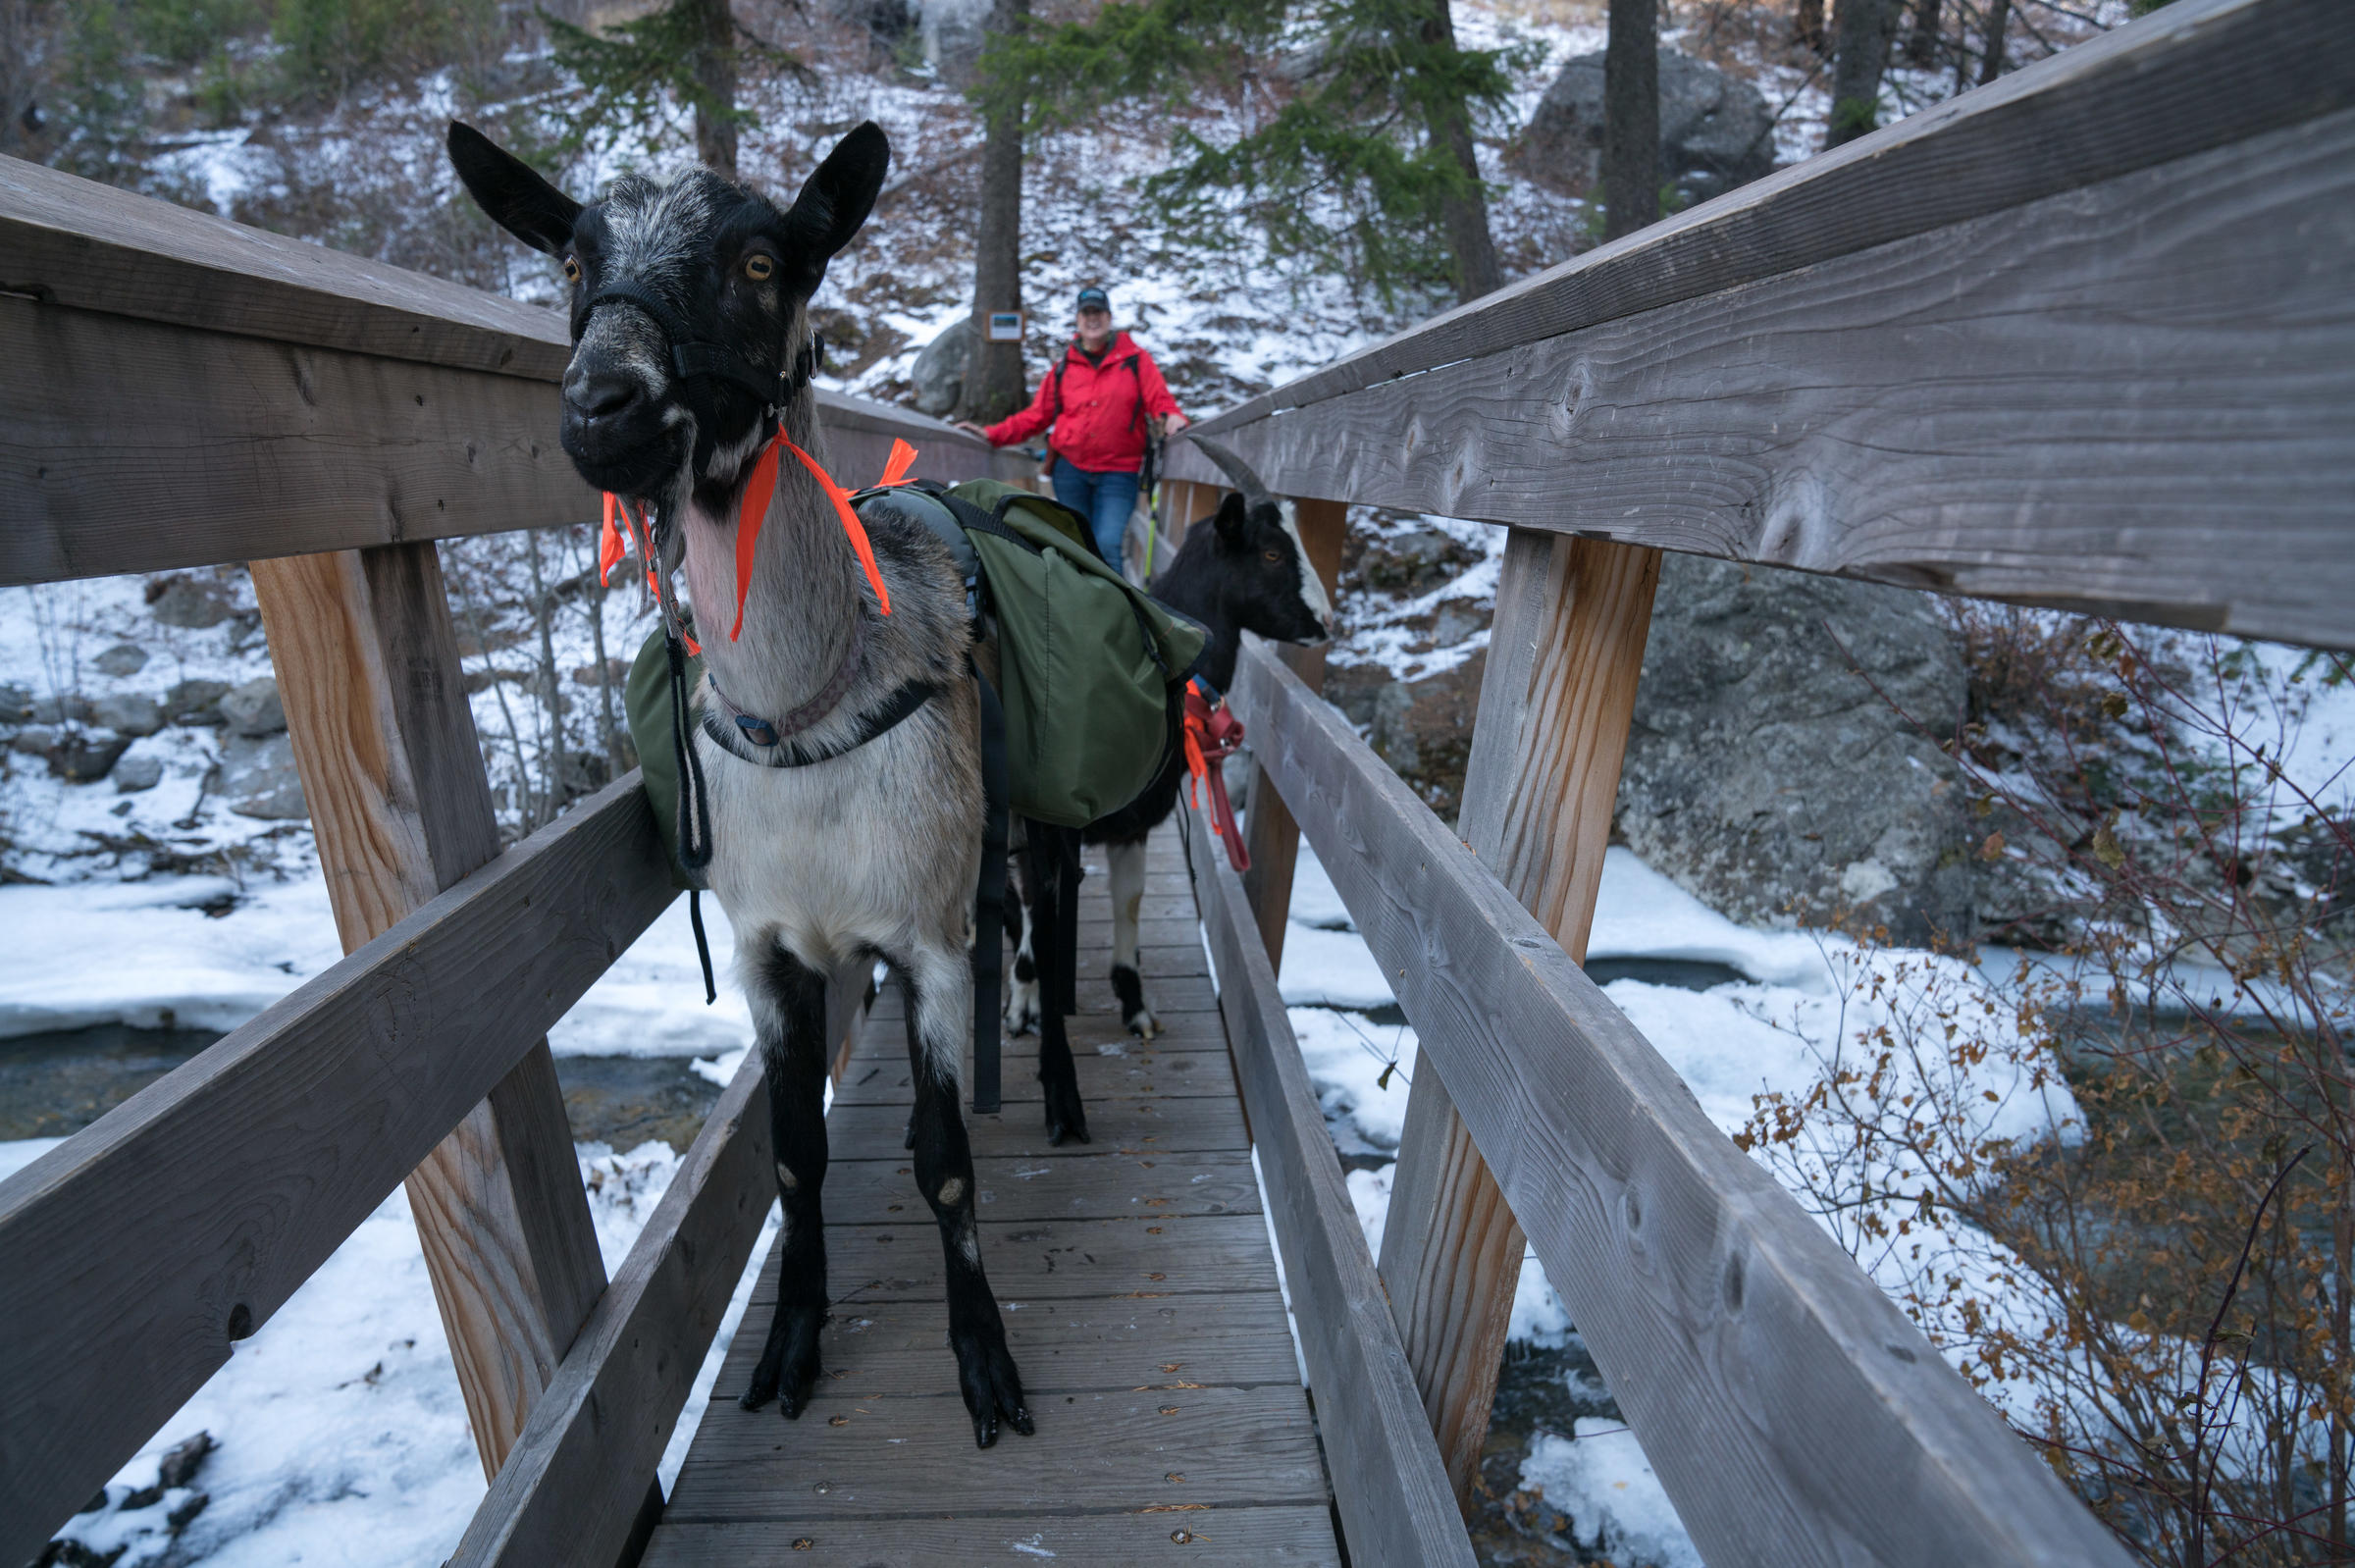 As Backcountry Travelers Shift Load To Goats, National Forests Eye Risks